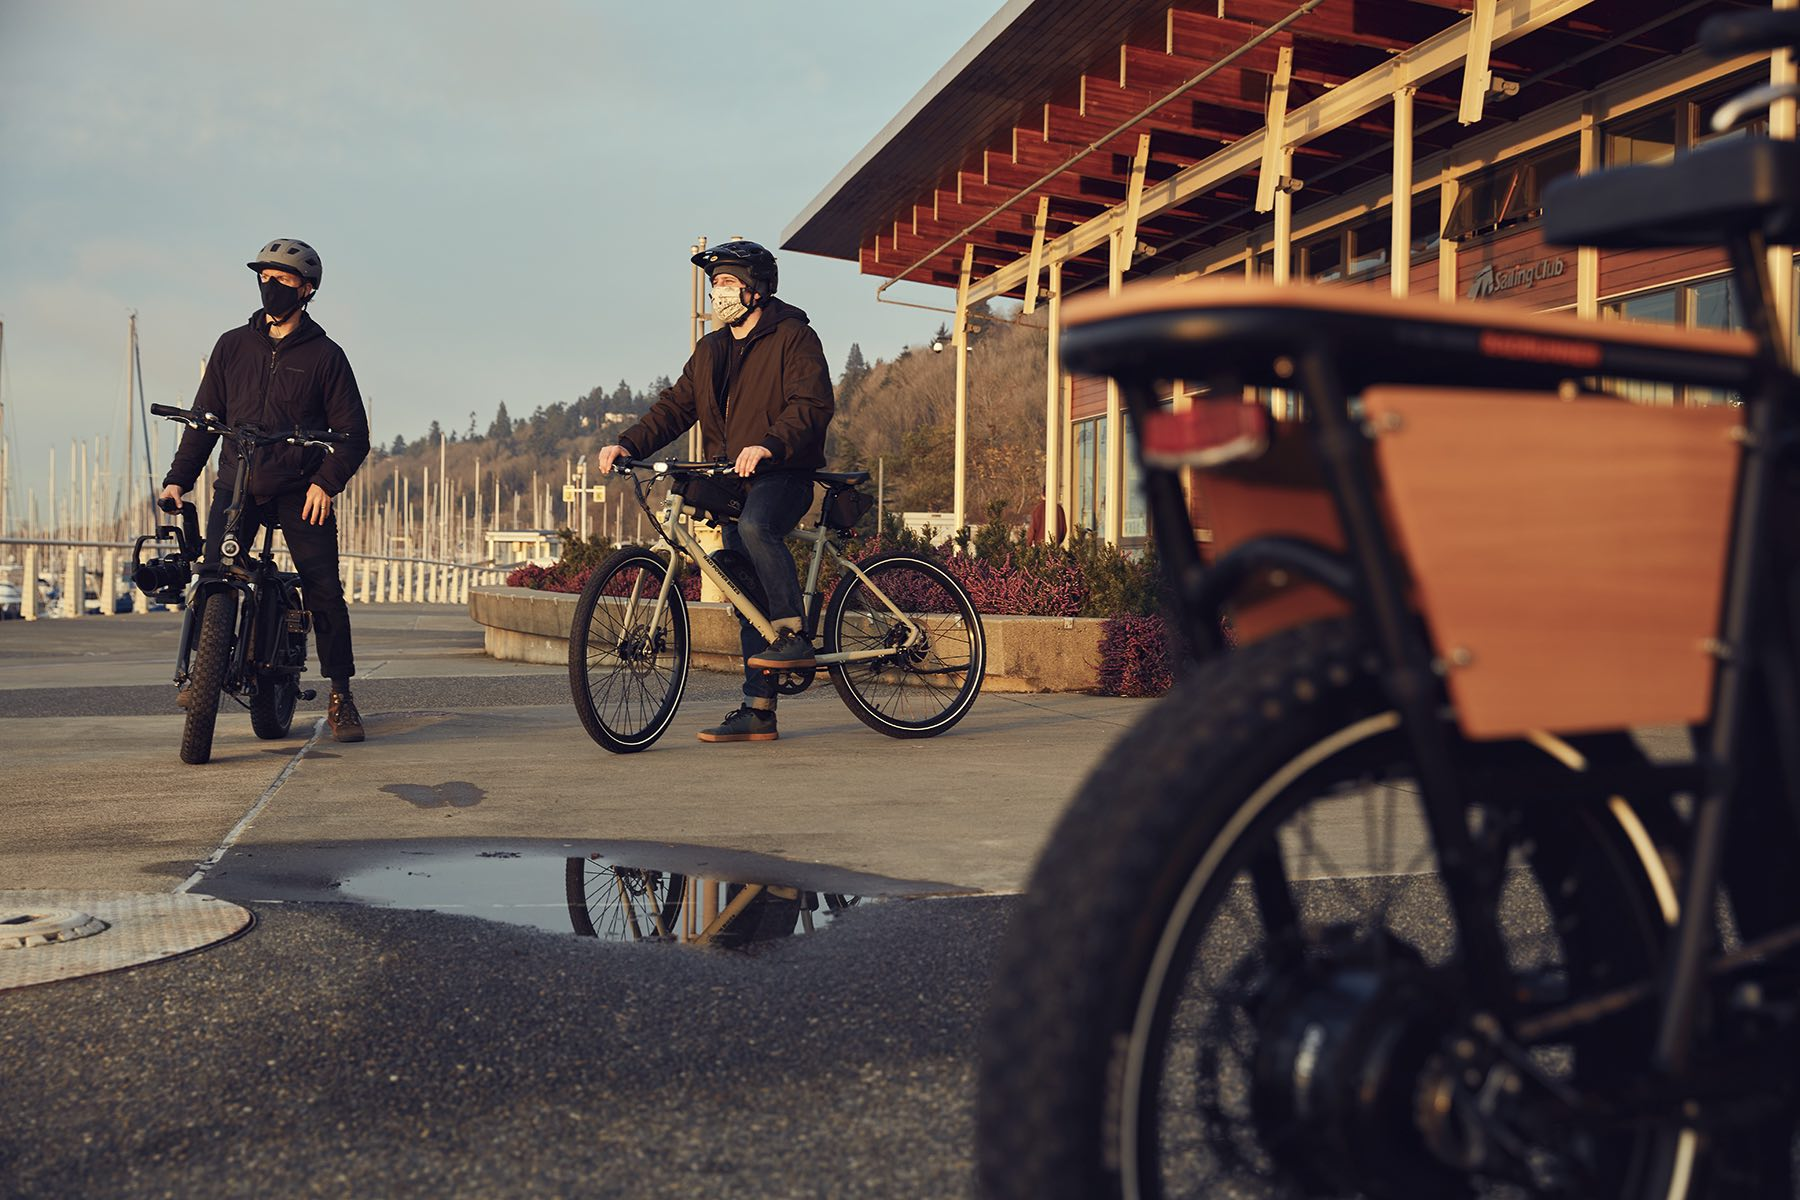 Three riders are on their electric bikes near a puddle